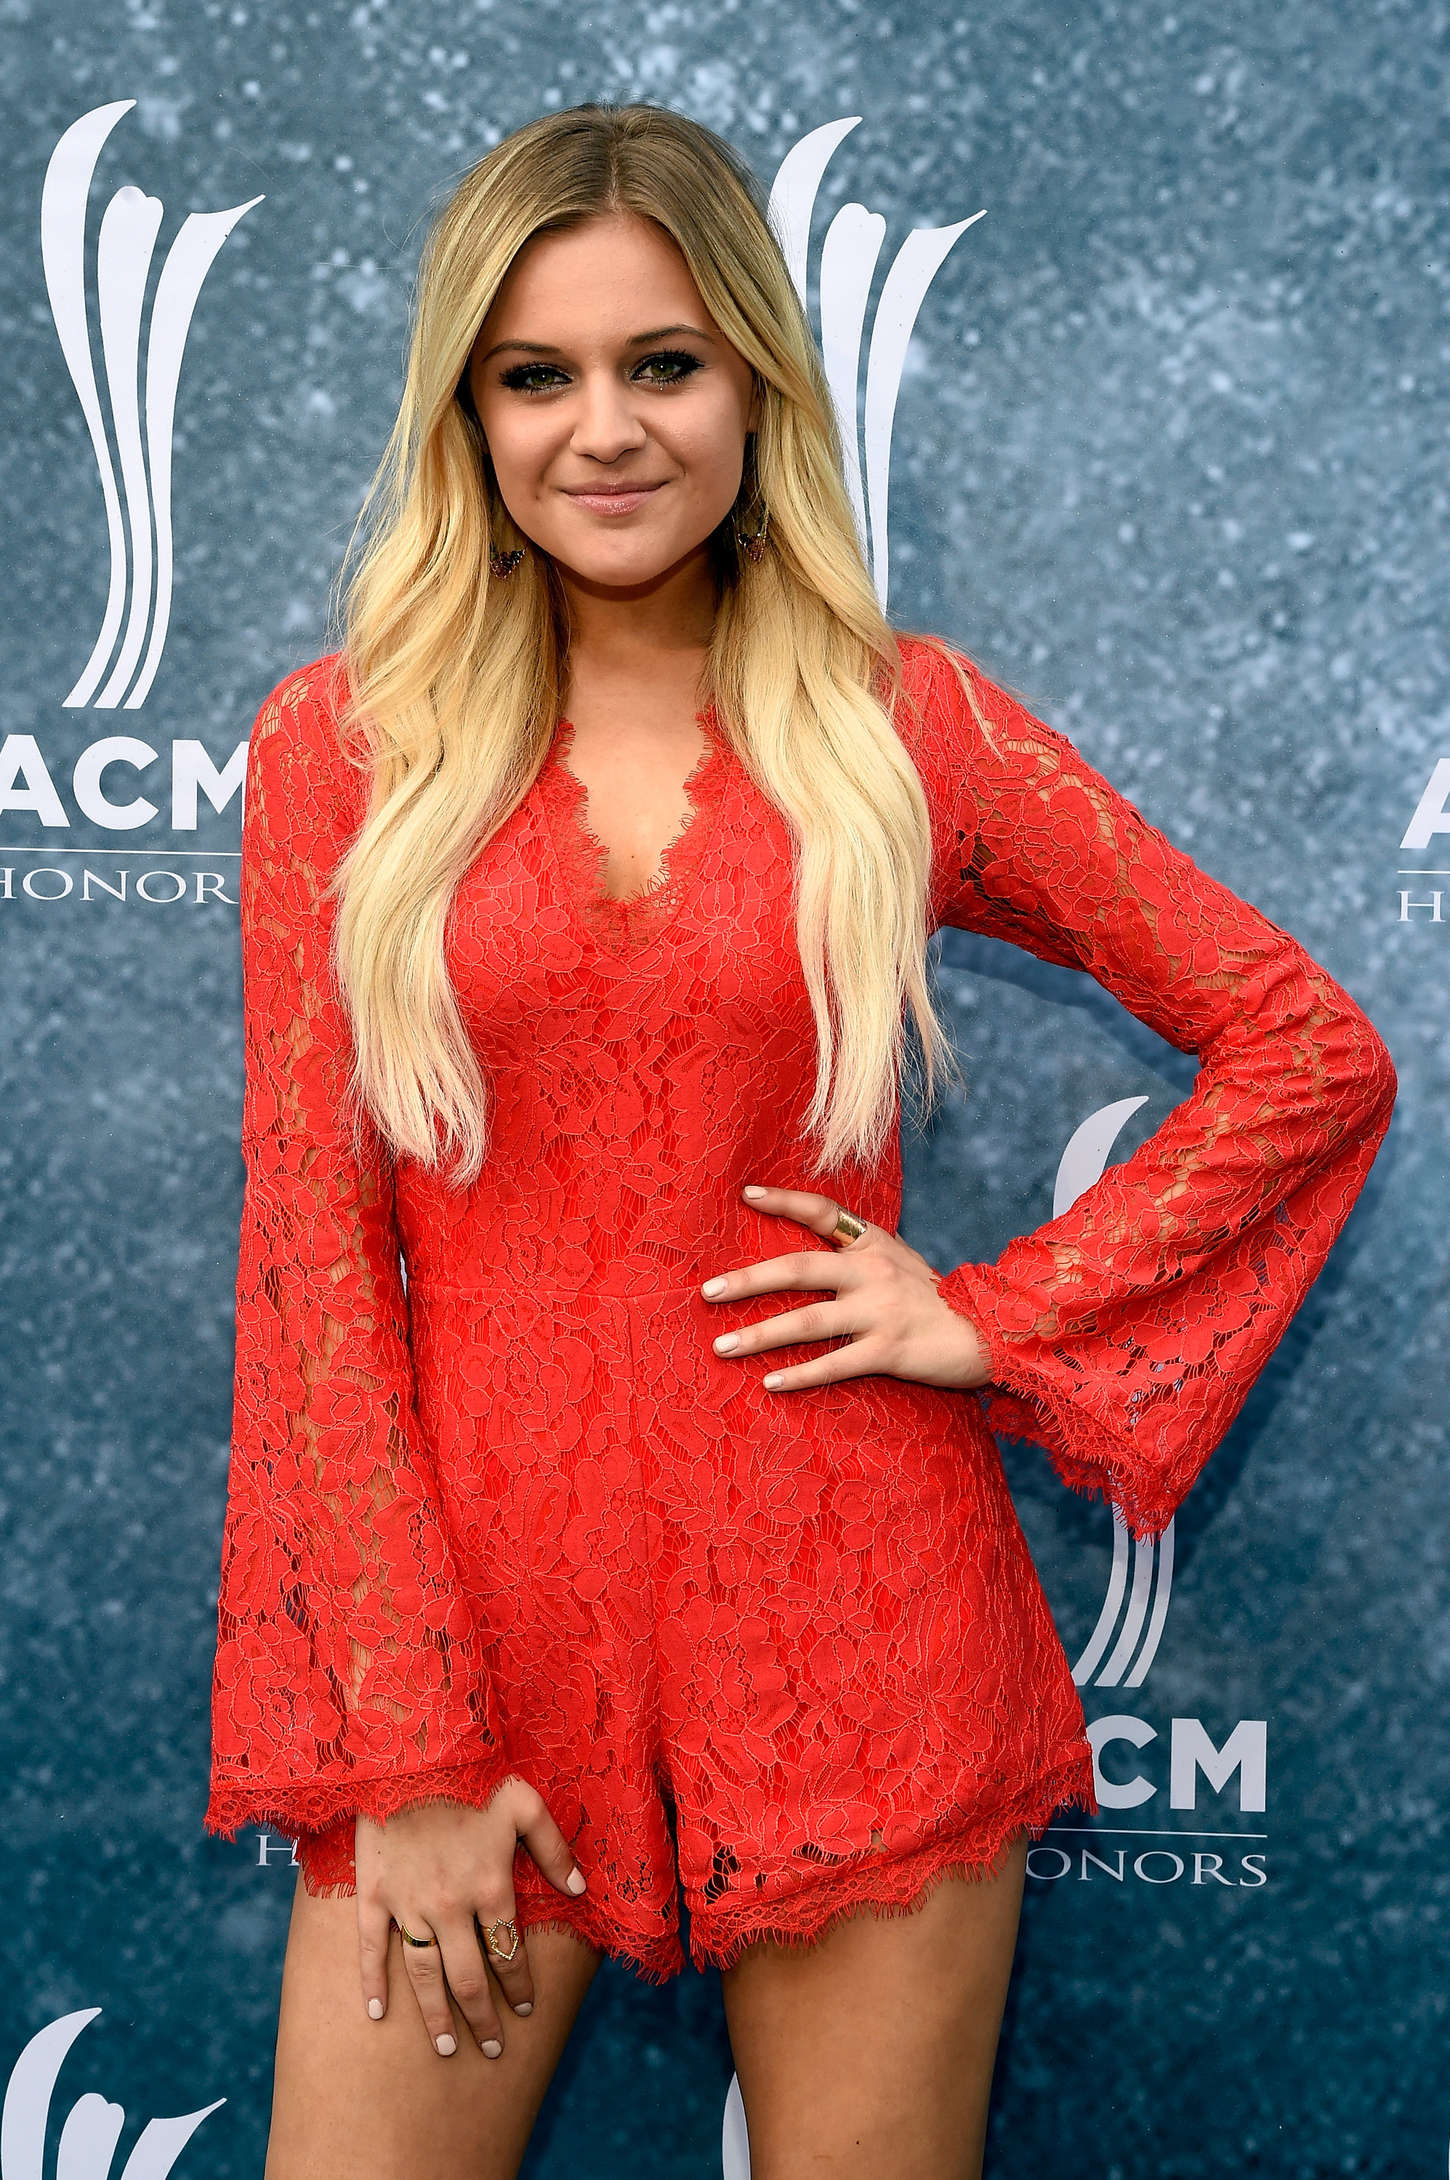 Kelsea Ballerini - The 9th Annual ACM Honors in Nashville